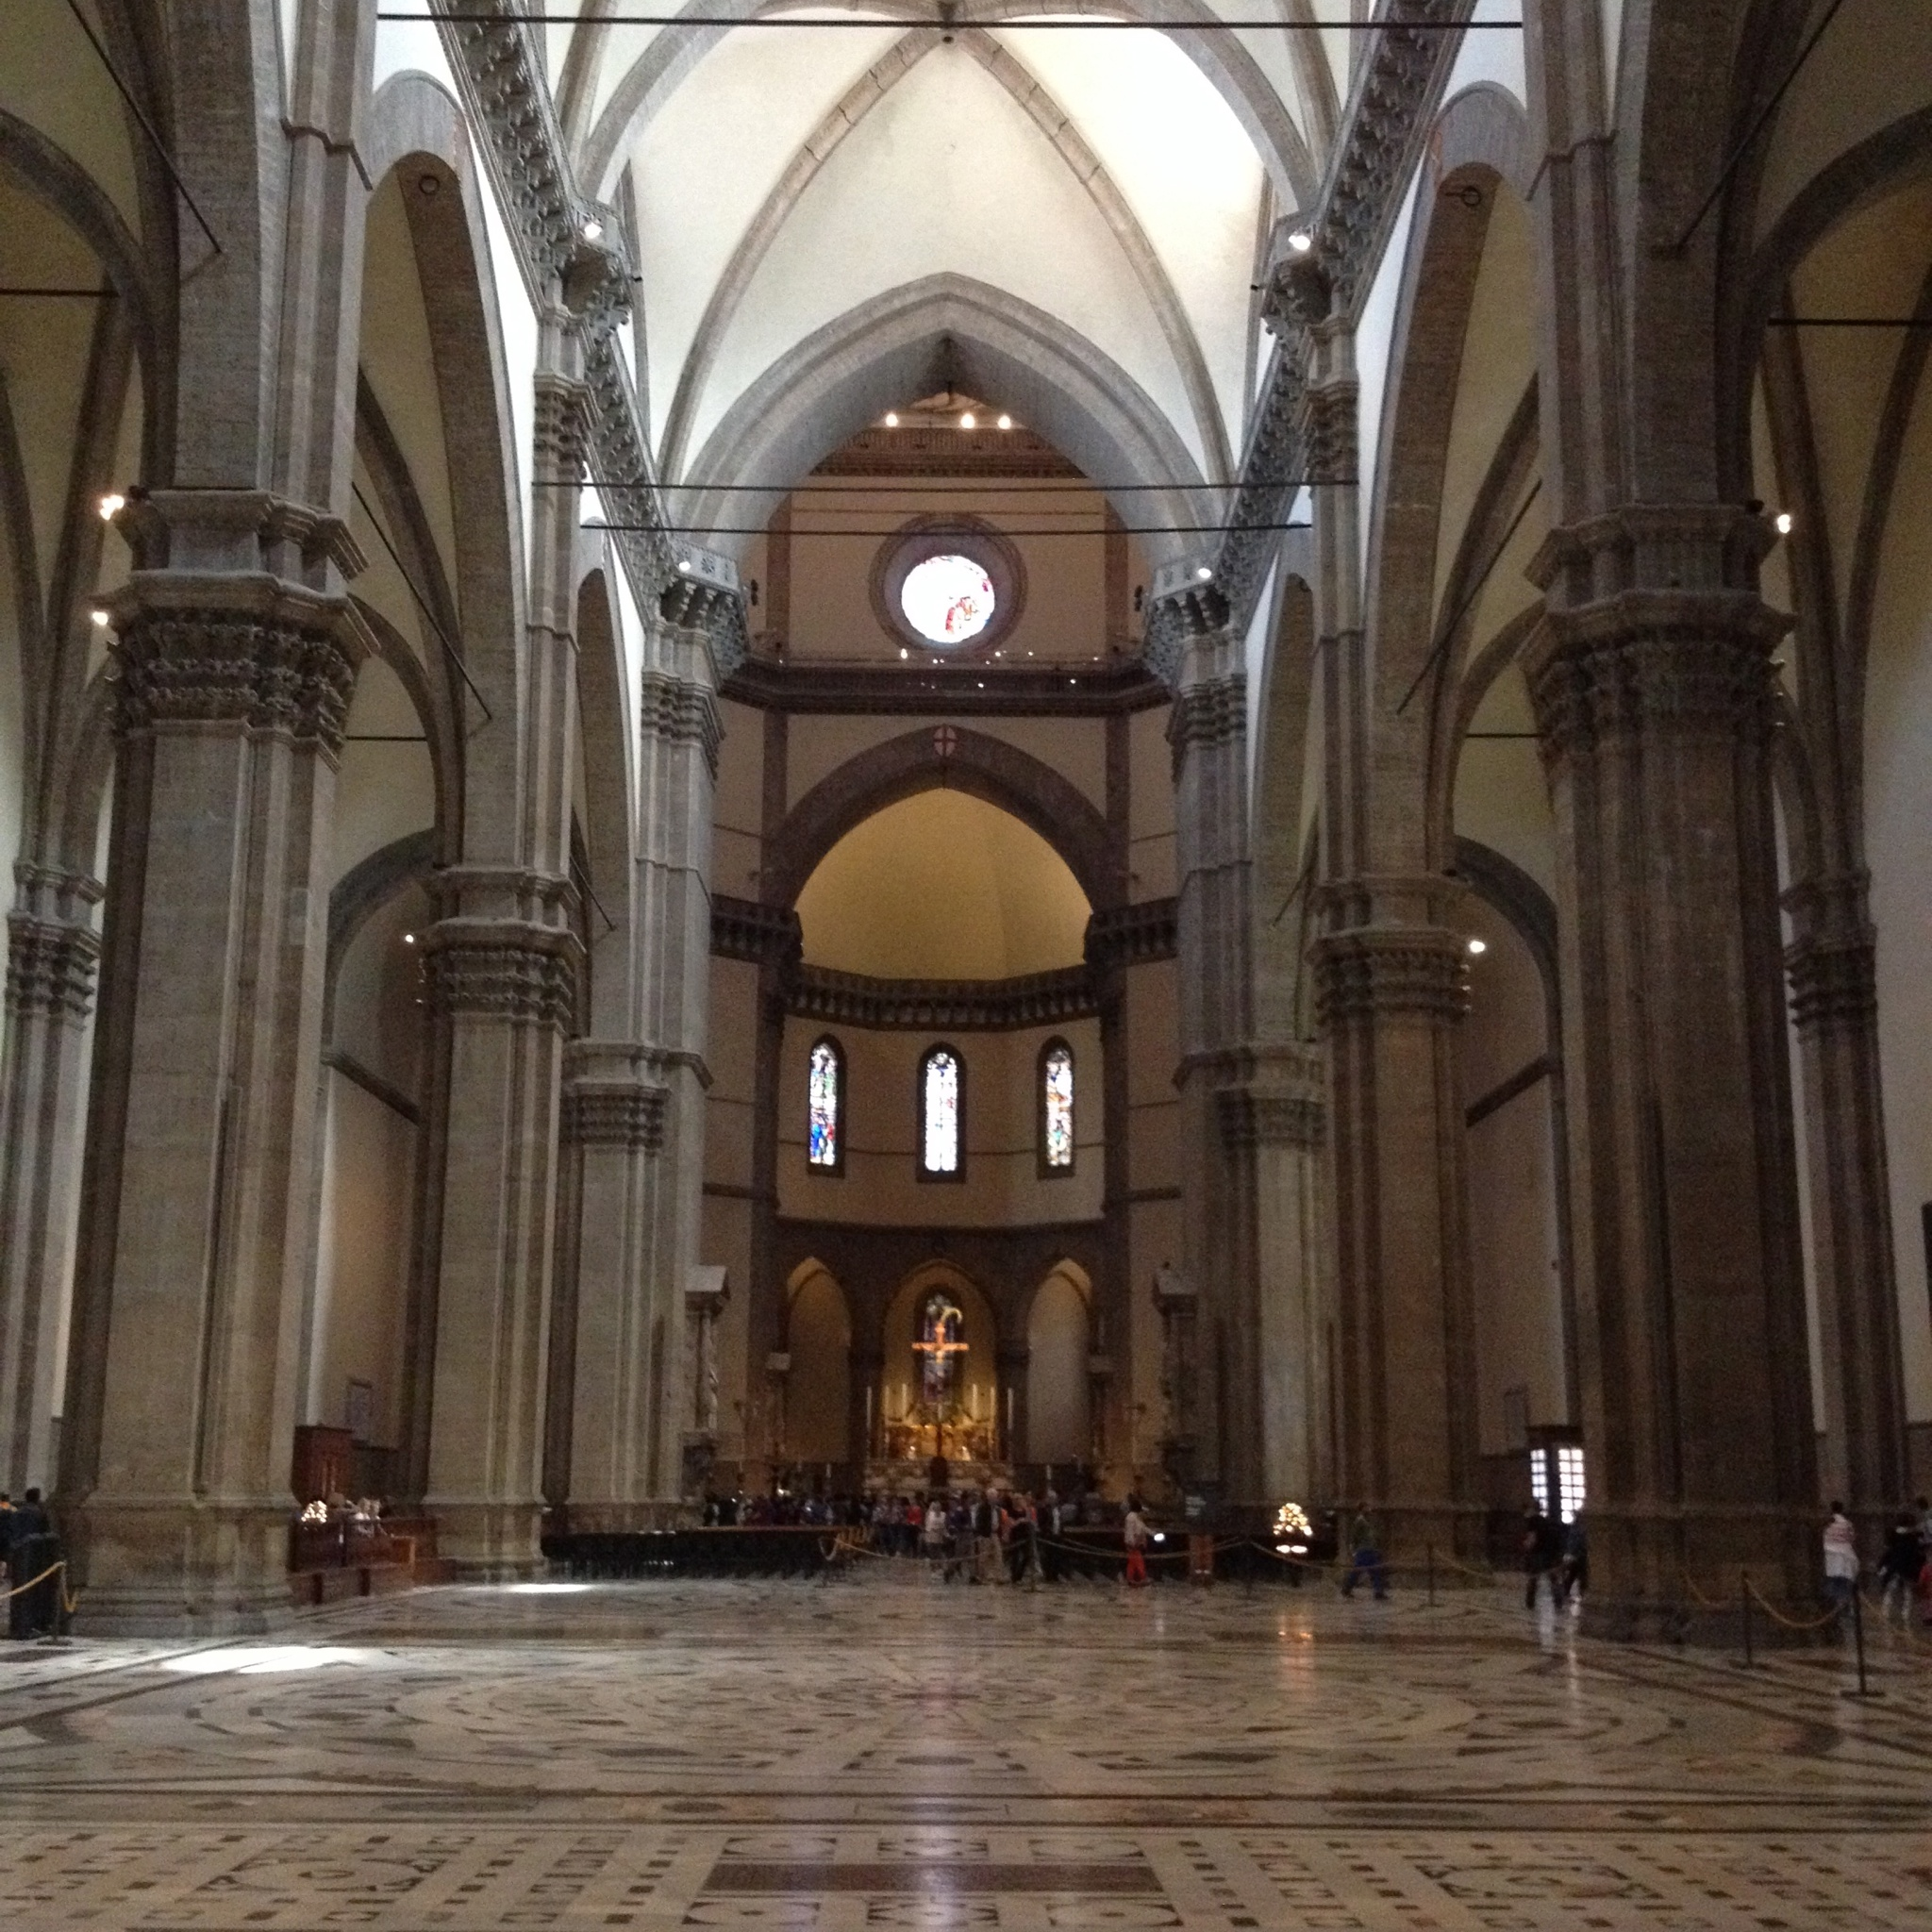 Inside the Duomo of Firenze